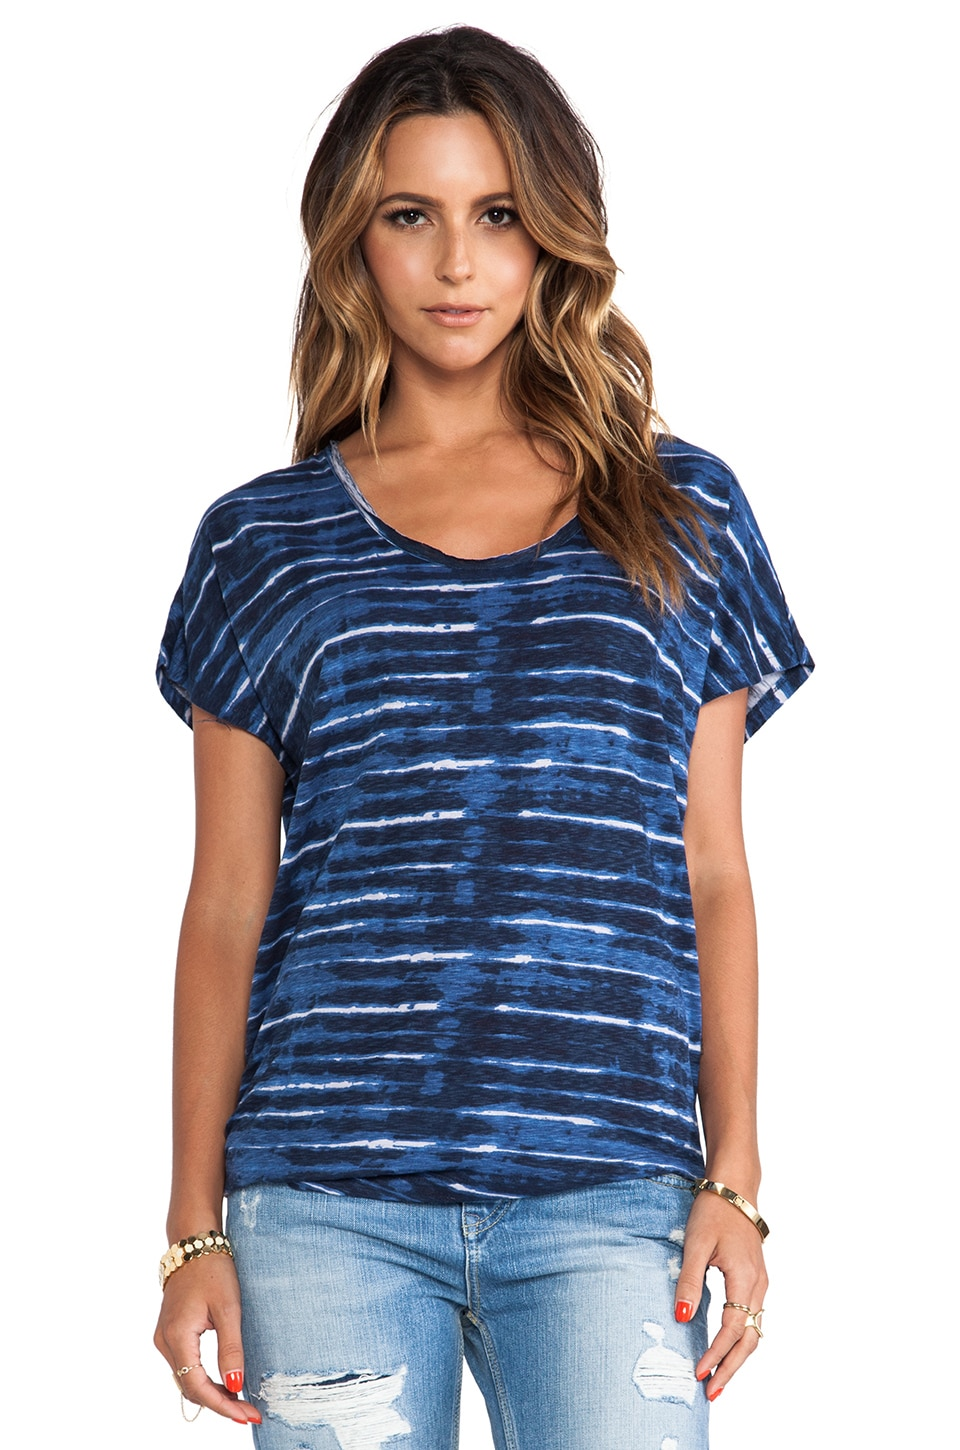 Soft Joie Diamind B Top in Indigo Blue & Eggshell